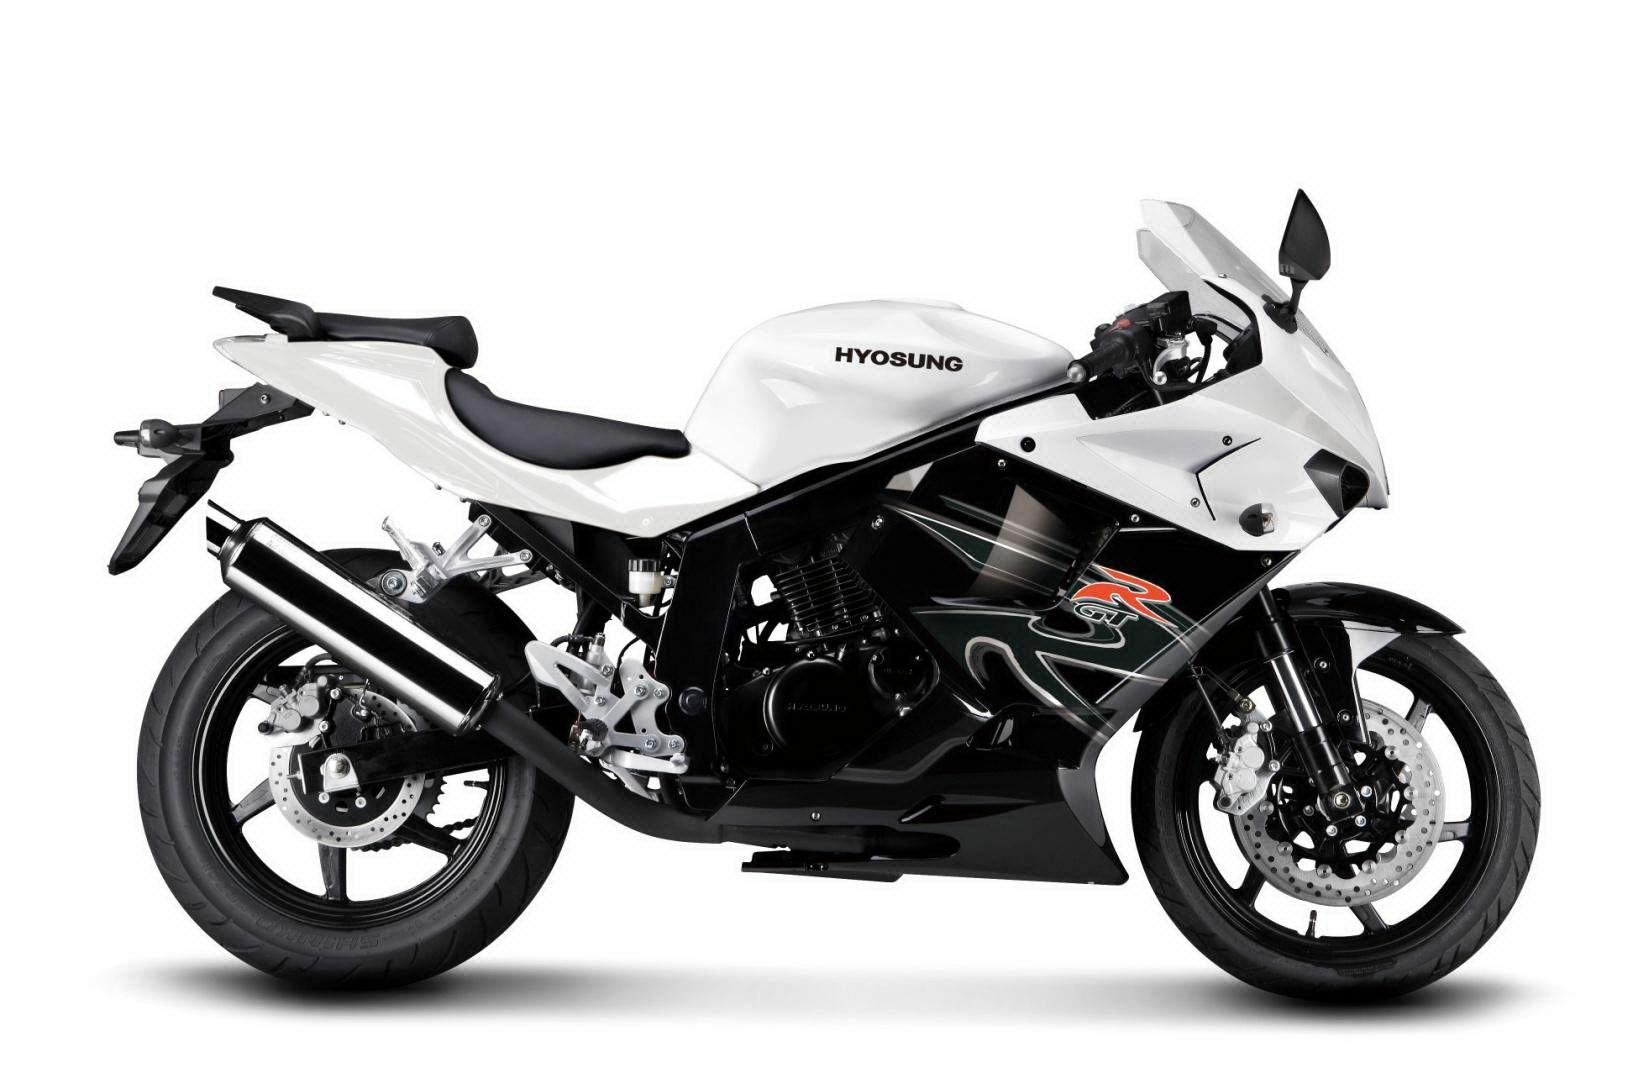 Hyosung GT 250R technical specifications